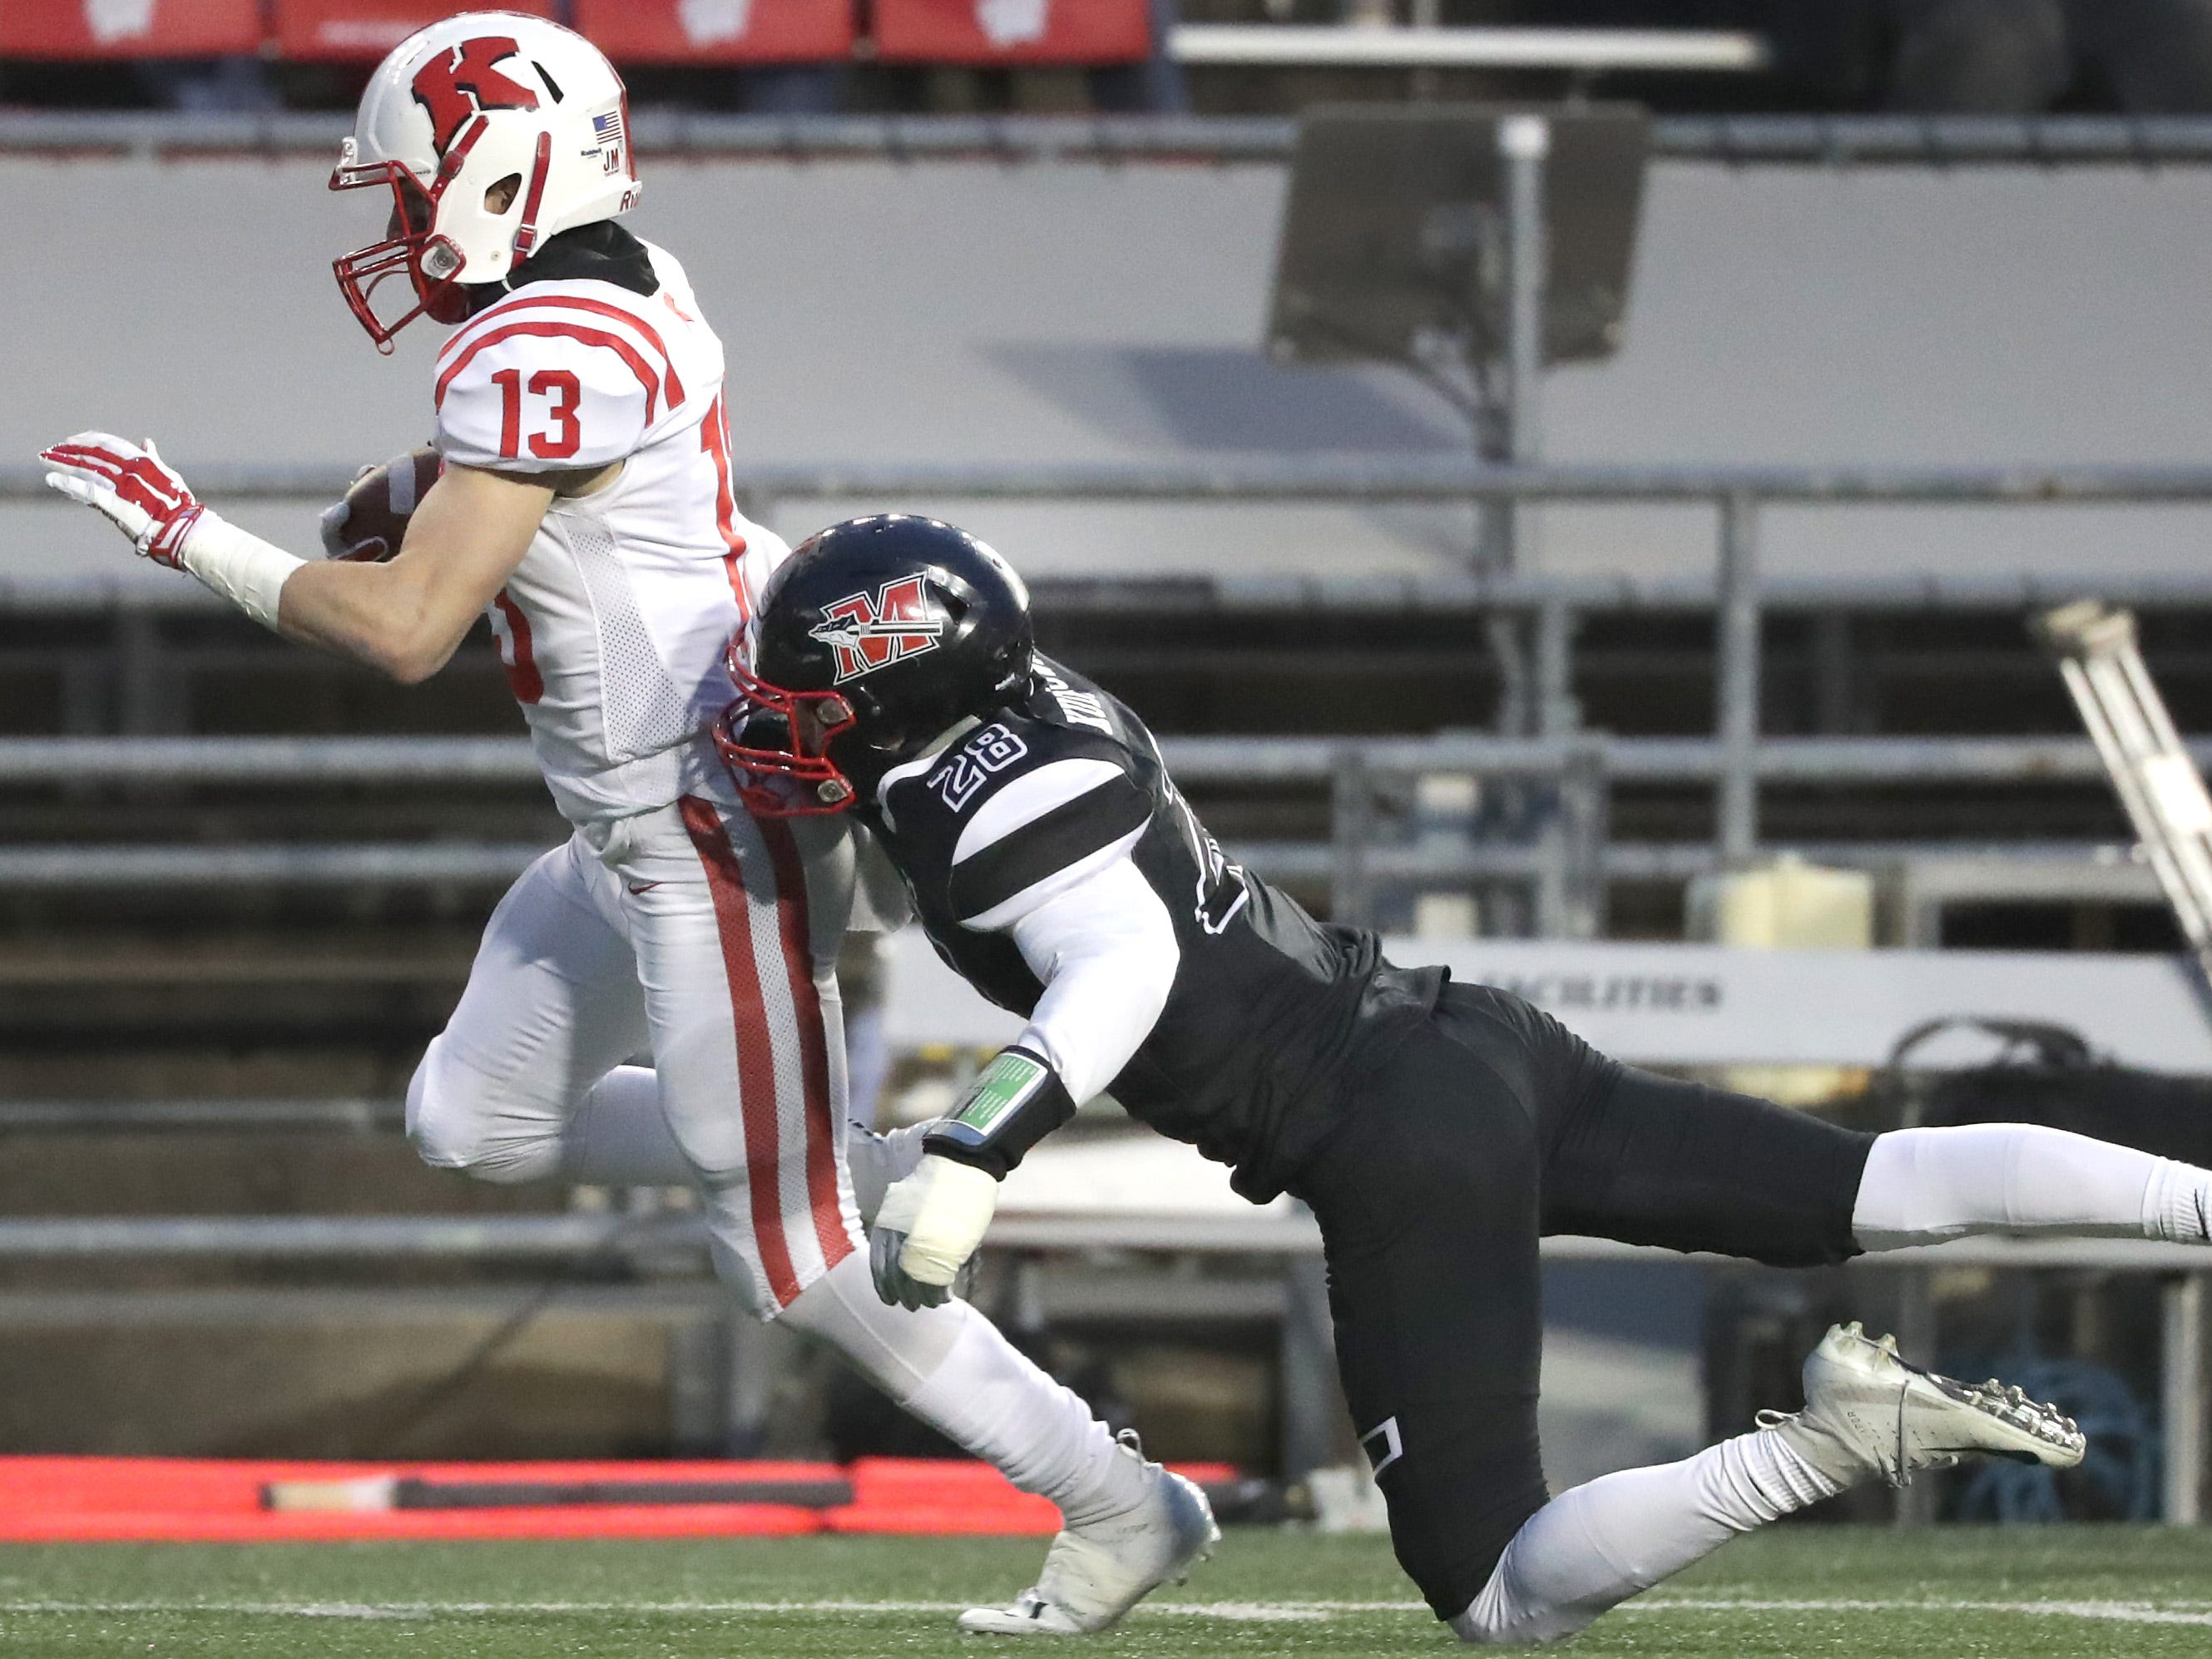 Kimberly High School's #13 Zach Lechnir is chased by Muskego High School's #28 Michael Kudronowicz following a pass reception during the WIAA Division 1 state championship football game on Friday, November 16, 2018, at Camp Randall in Madison, Wis.